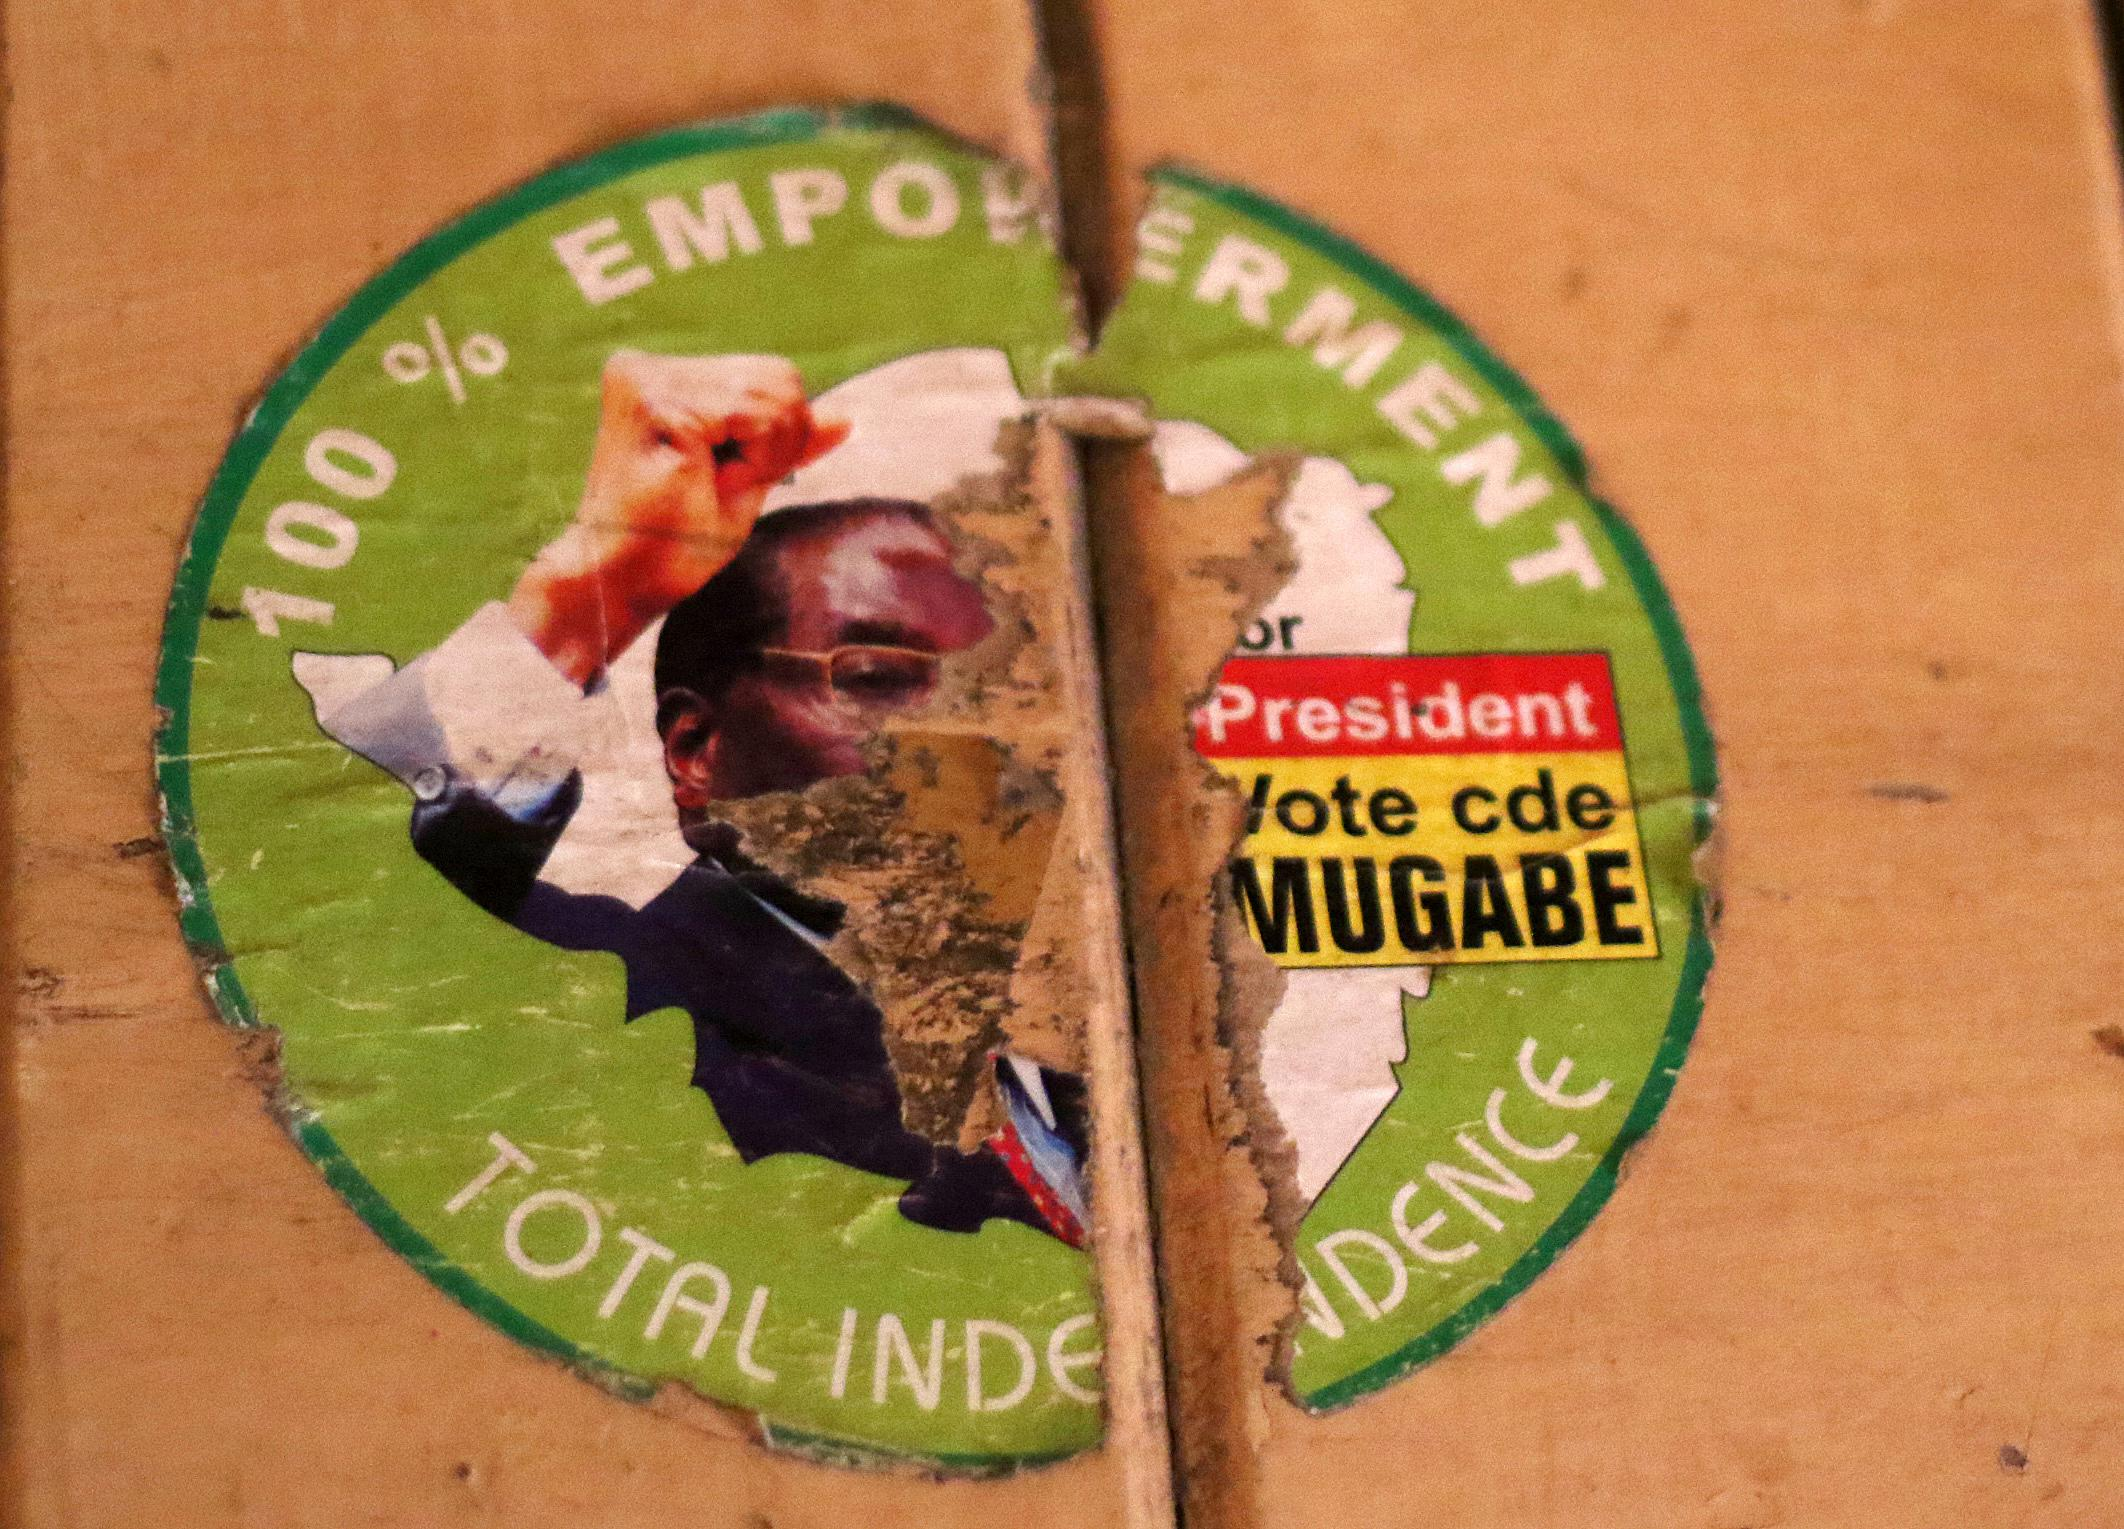 An old torn election sticker, with a portrait of Zimbabwean President Robert Mugabe, on a building in Harare Sunday, Nov. 19 2017. Zimbabwe's ruling party Central Committee begun removing Mugabe as party leader and replacing him with recently fired Vice President, Emmerson Mnangagwa. (AP Photo)